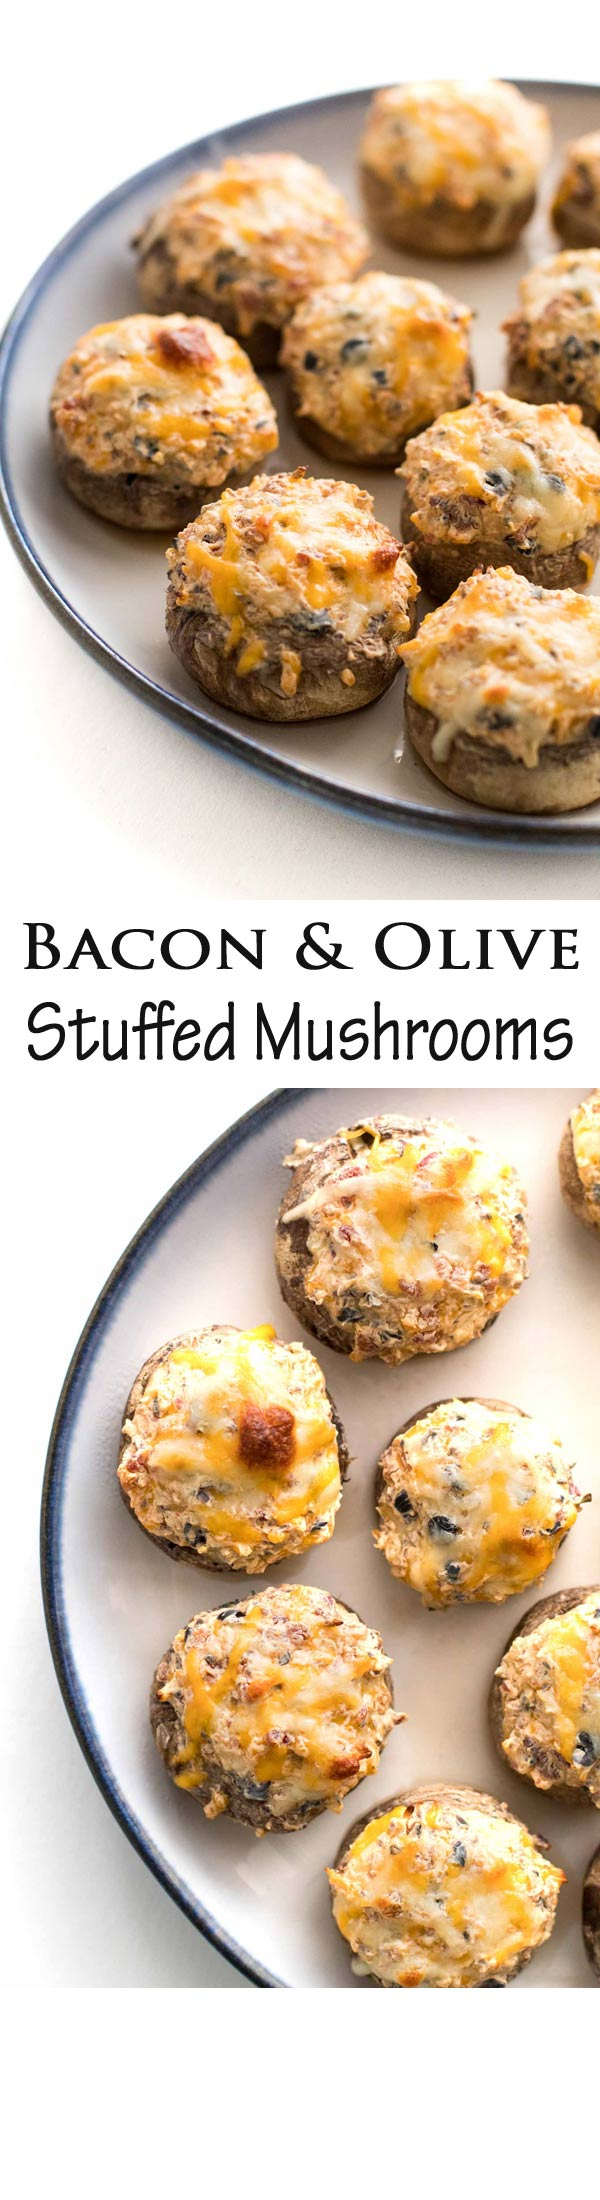 These roasted mushrooms are stuffed with a tasty mixture of bacon, olives, and cheese. The perfect appetizers for parties and BBQs!